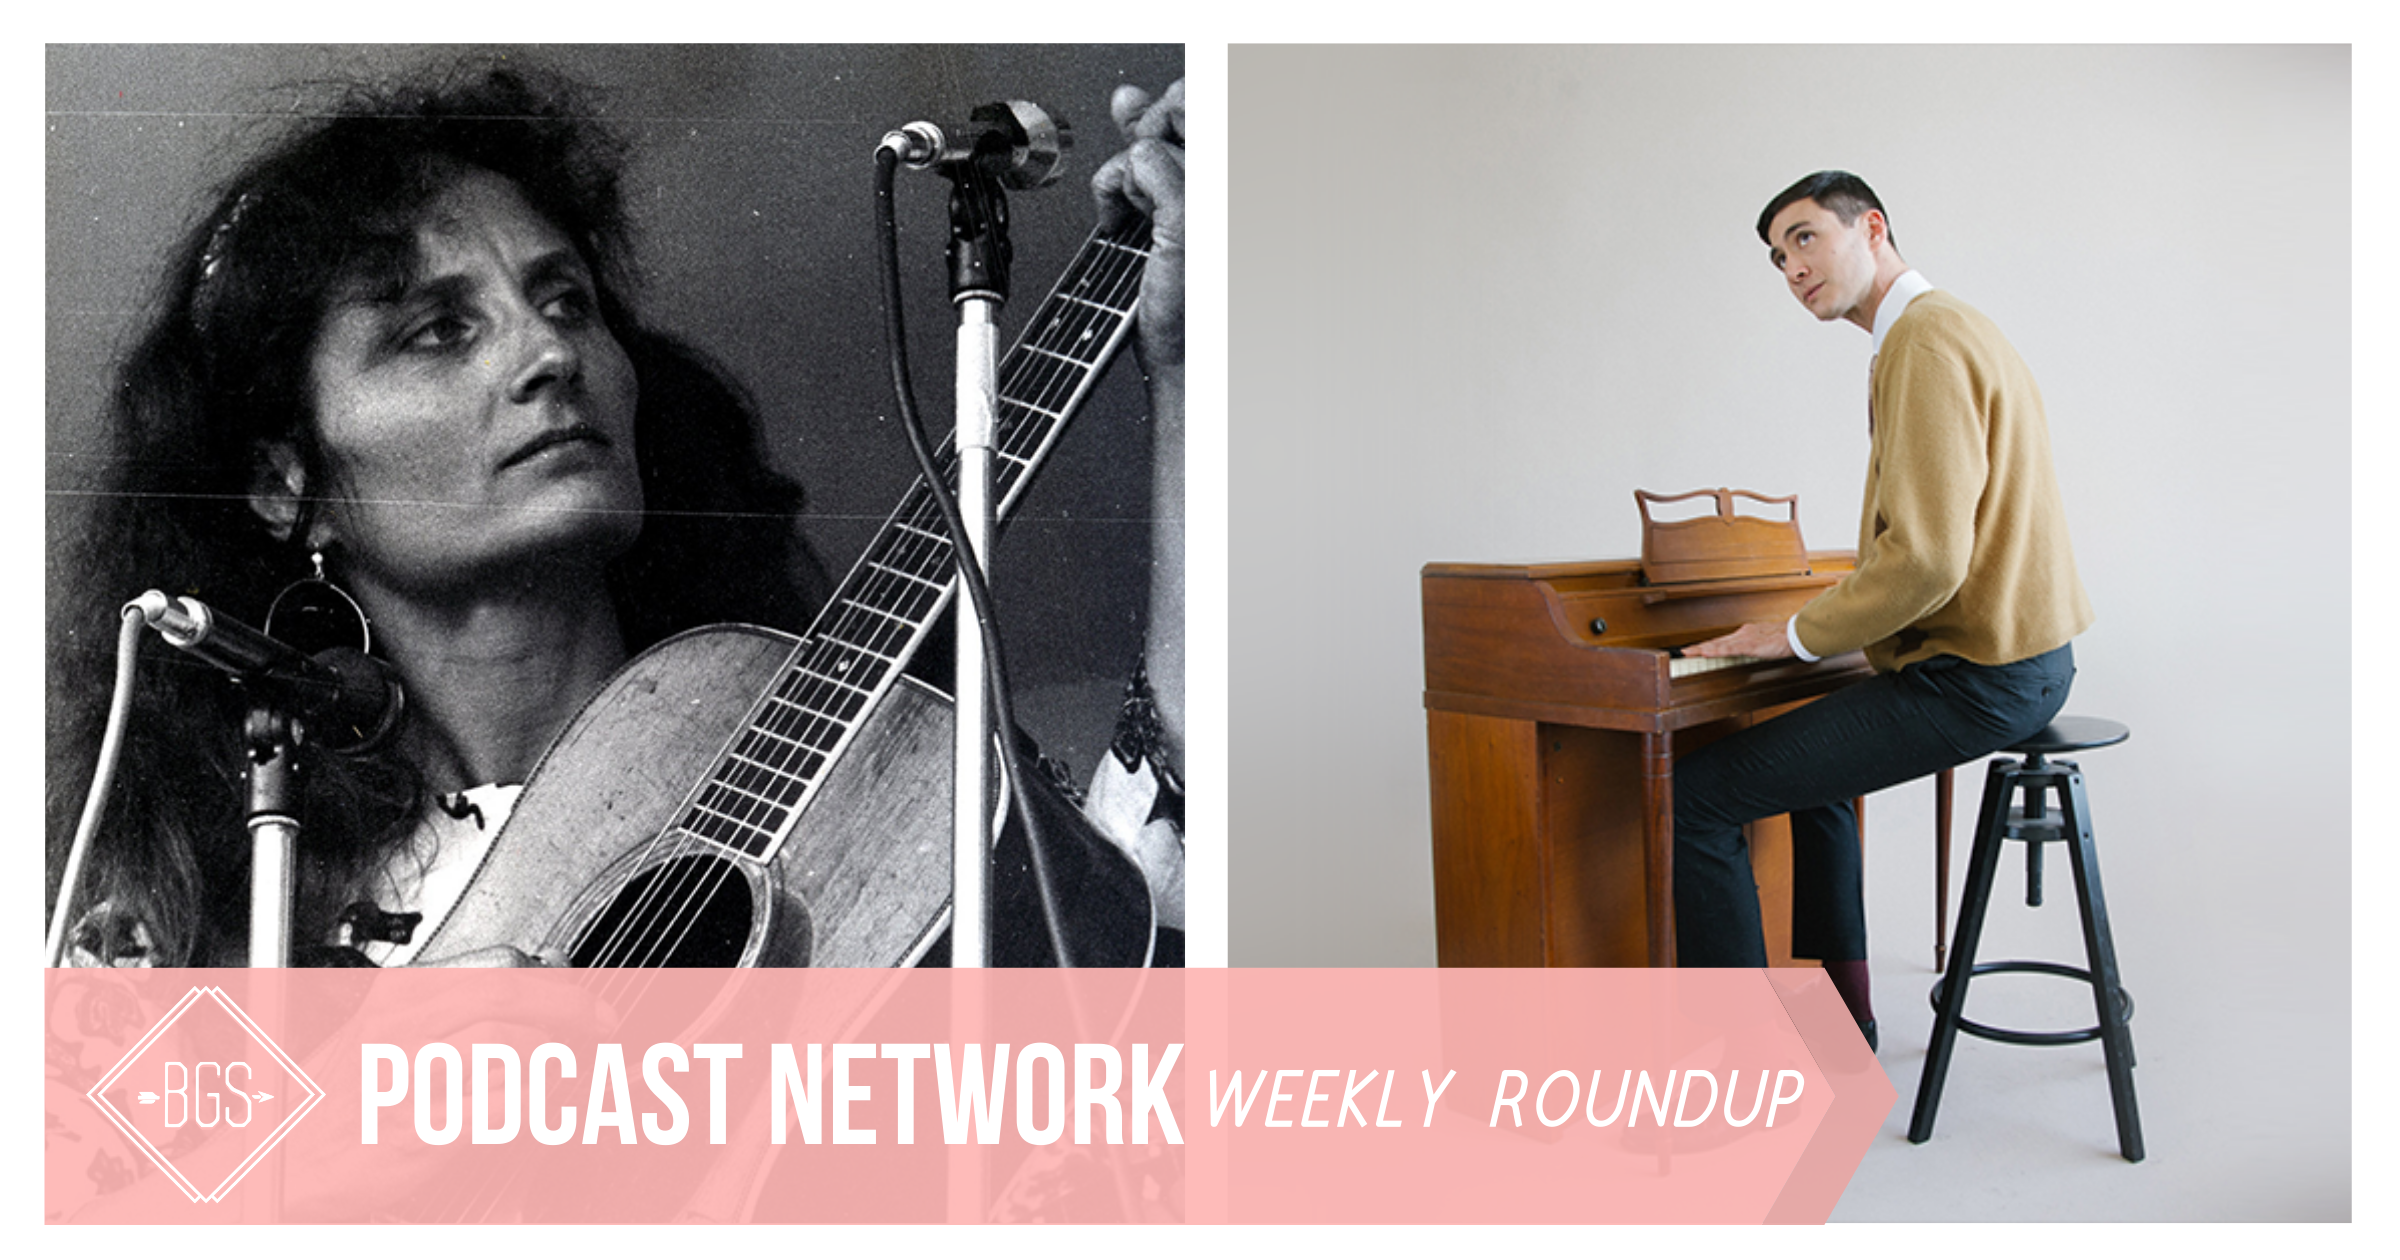 BGS Podcast Network: Weekly Roundup // April 10